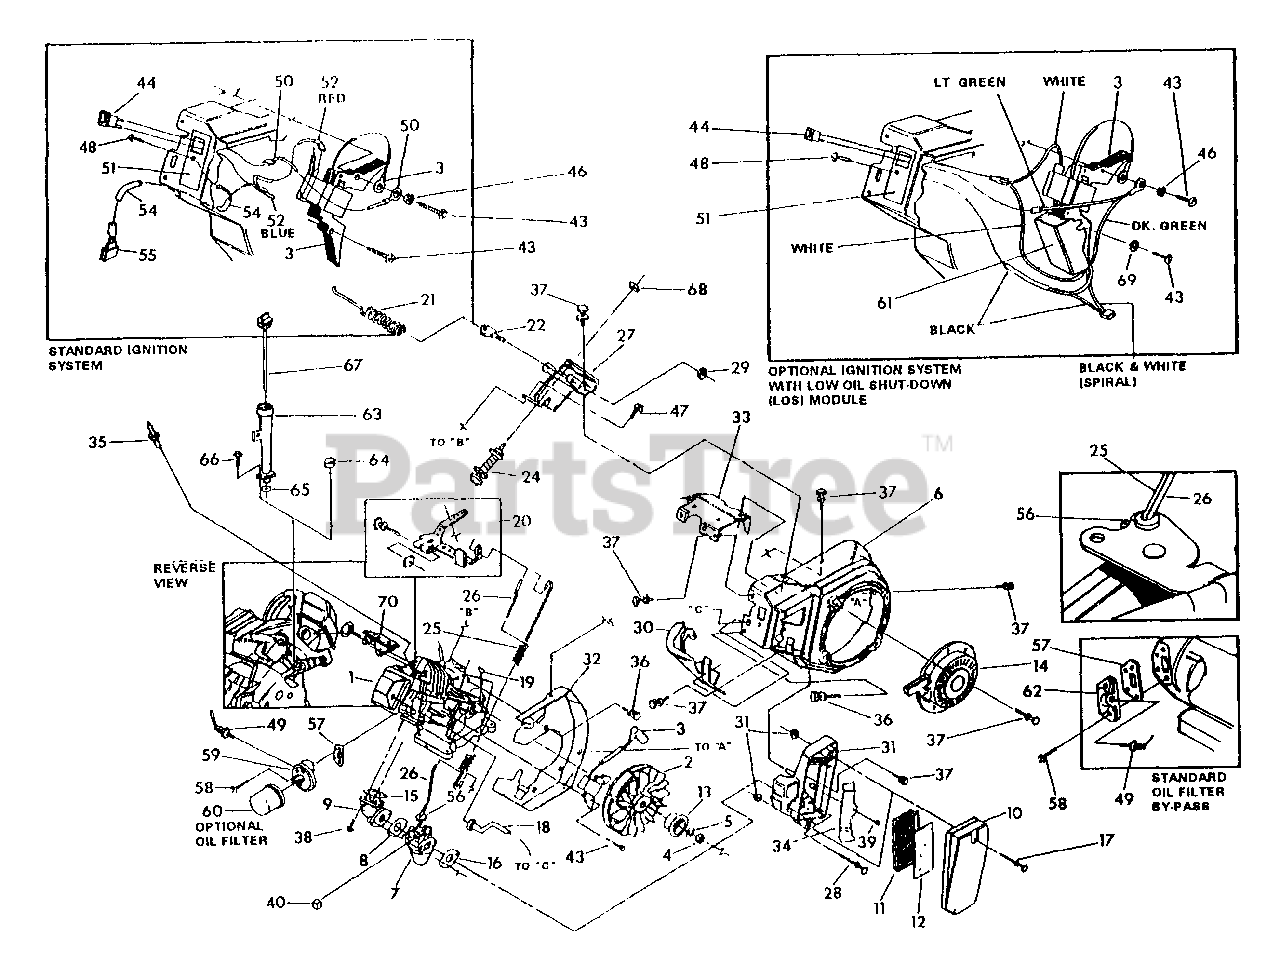 Generac Parts On The Engine Trim Parts Revision 1 9 25 95